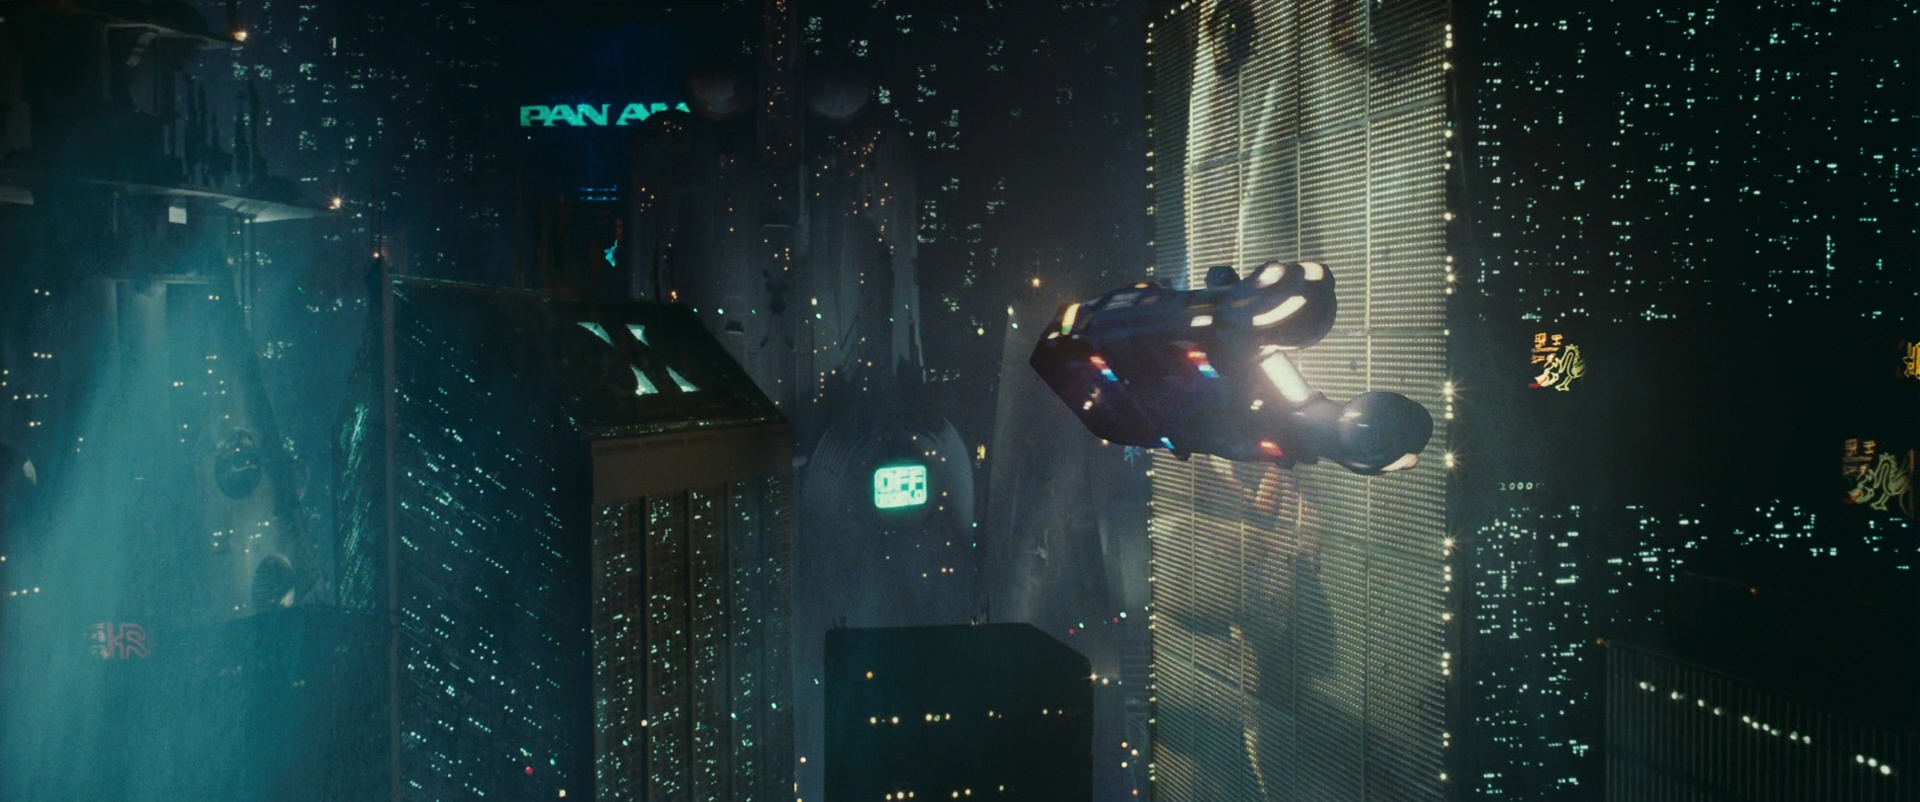 Pan Am In Blade Runner 1982 Movie